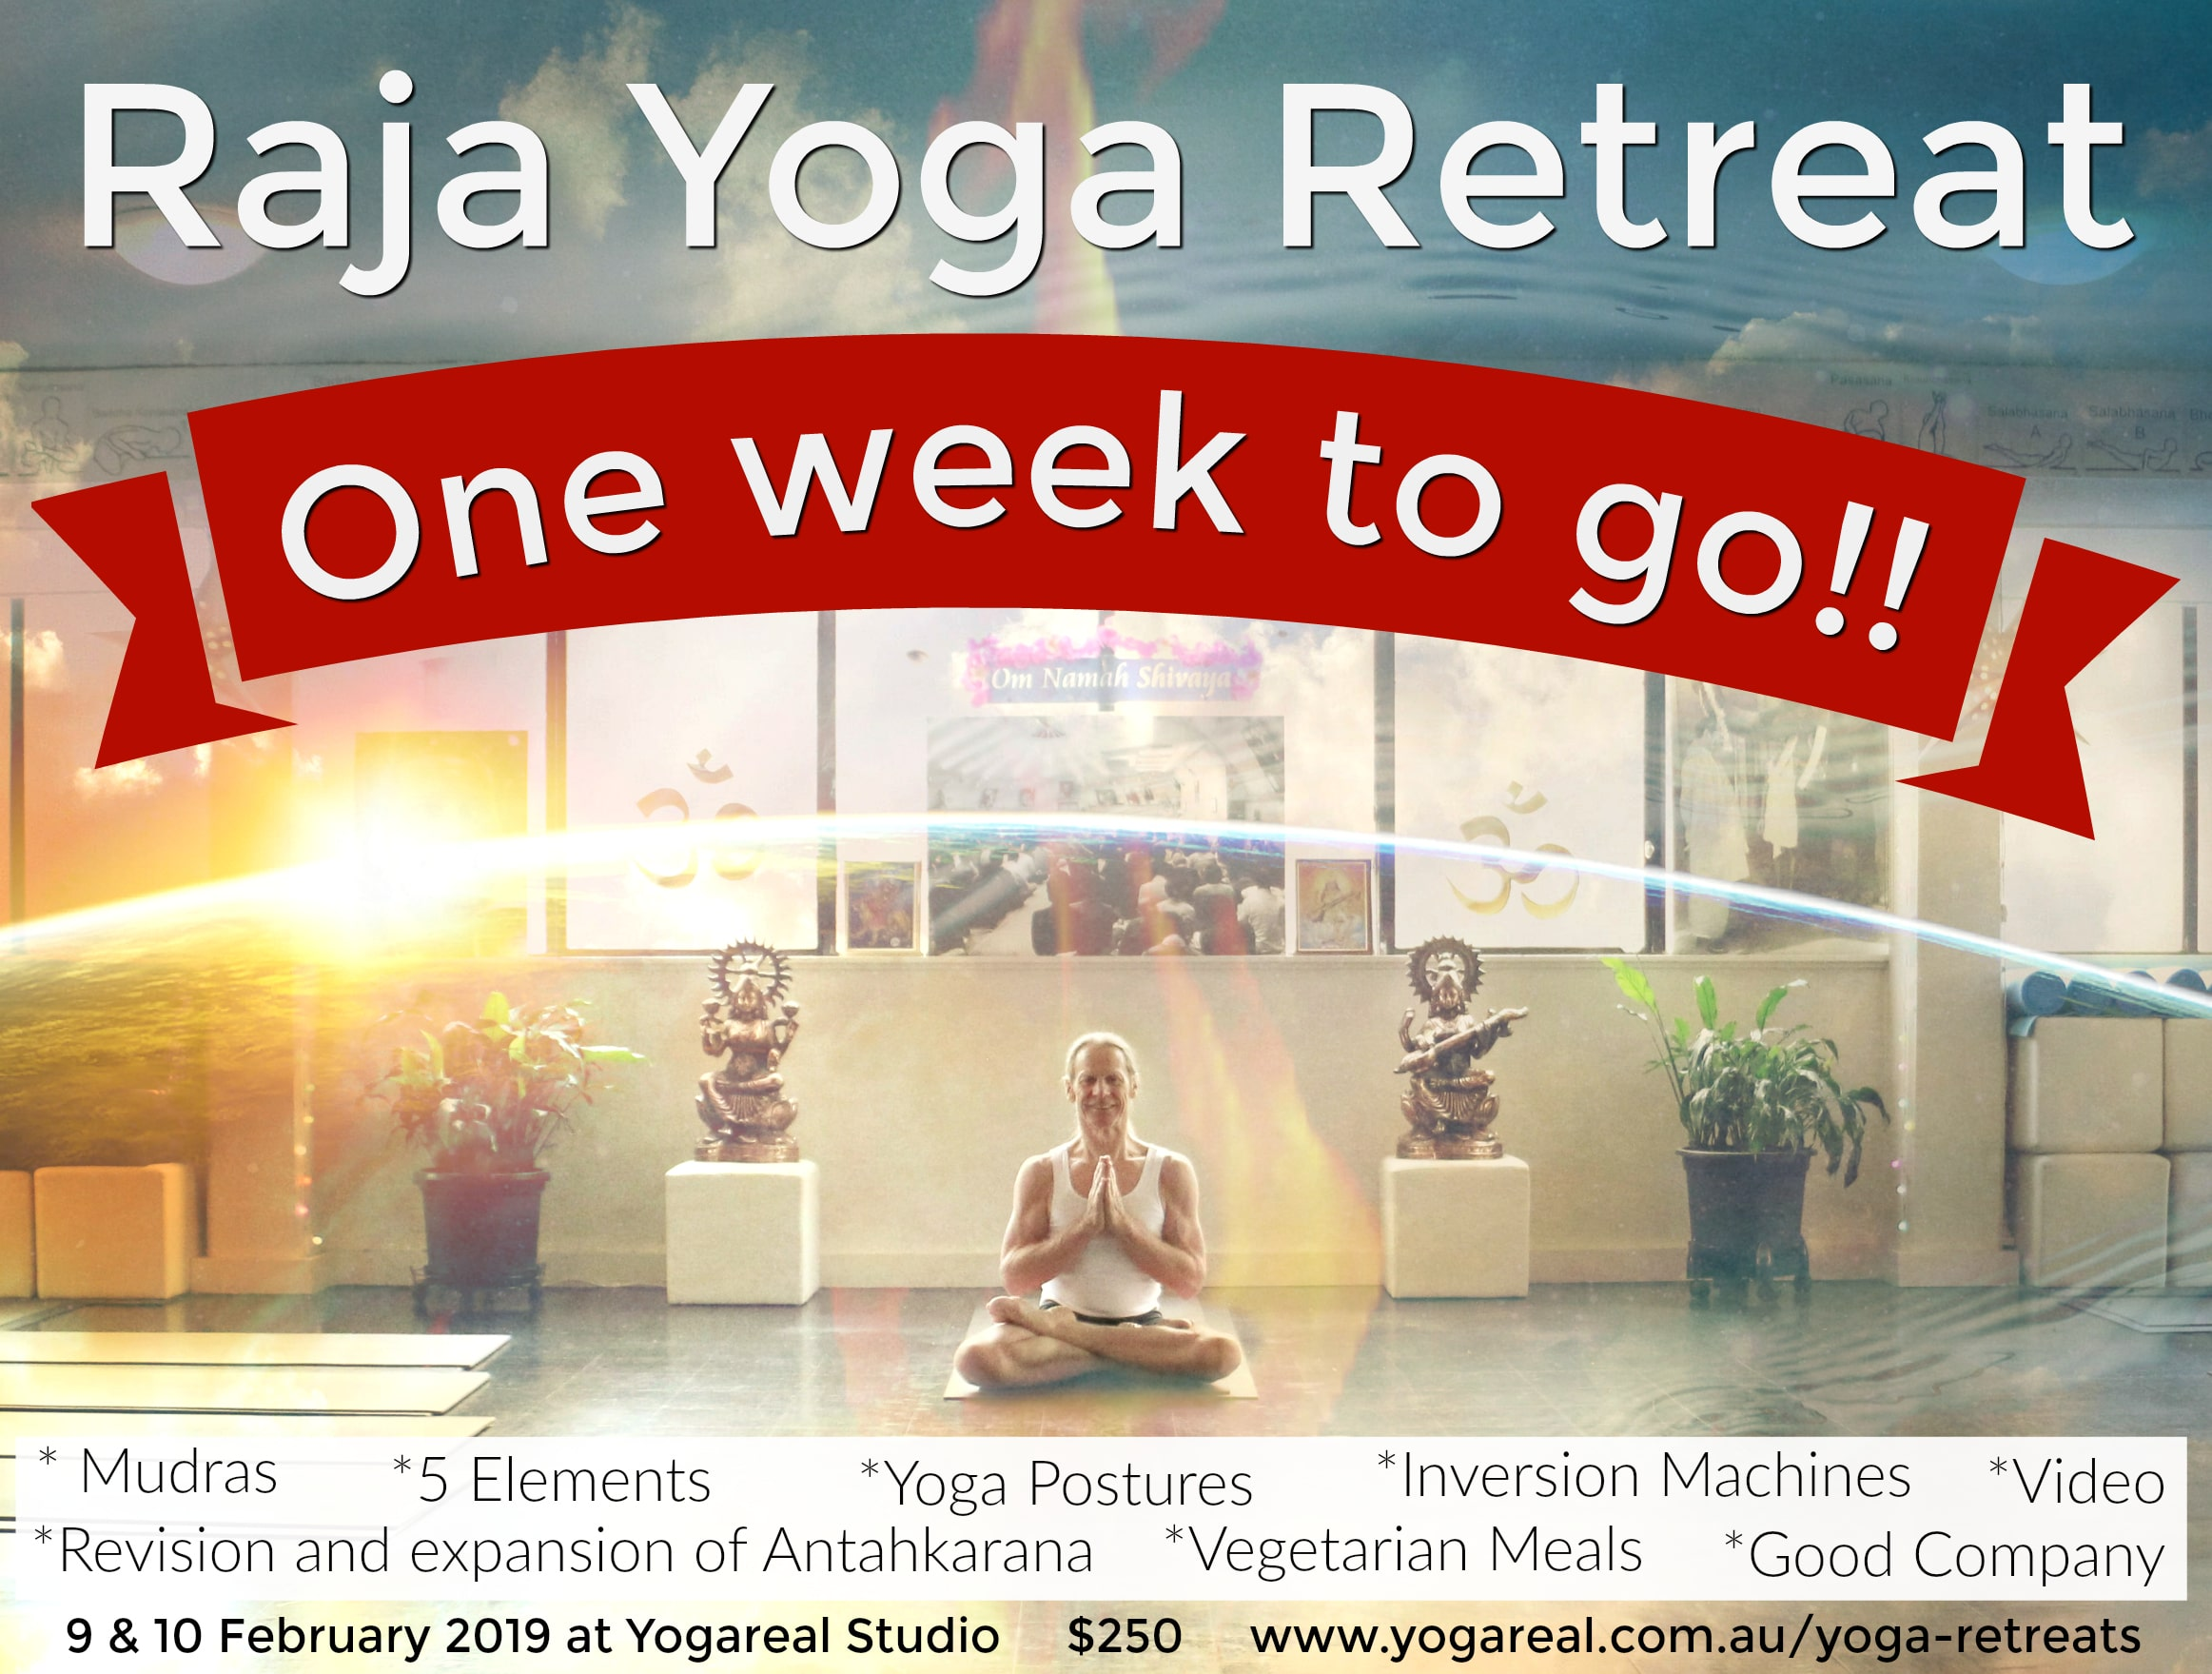 Rob_Anjali_Raja-Yoga-Retreat_oneweek.jpg